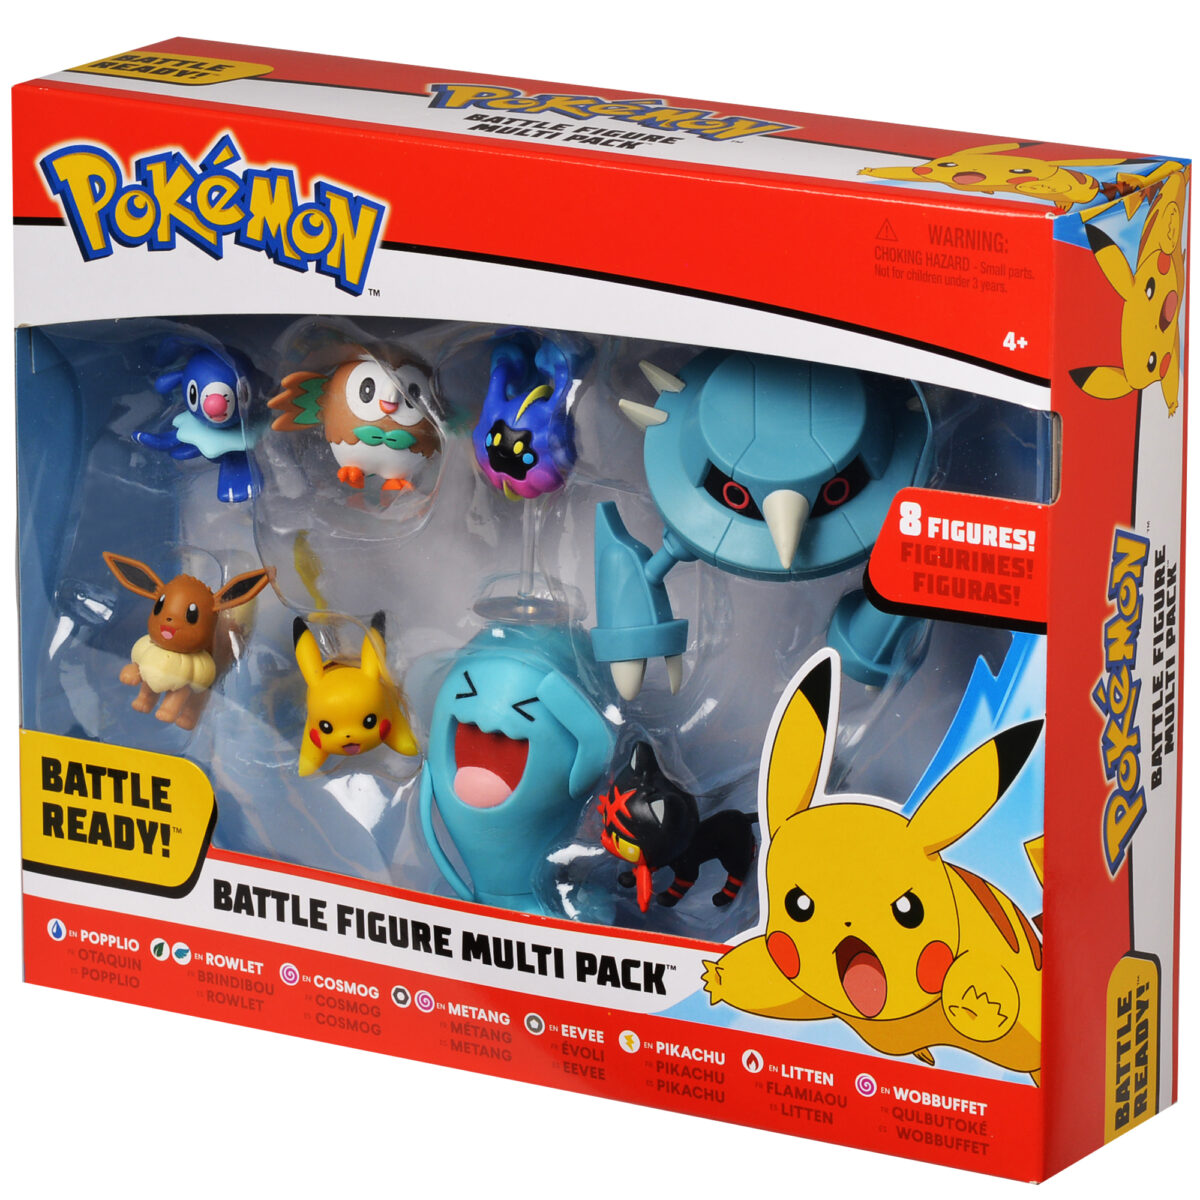 Another Multi-Pack of Pokemon